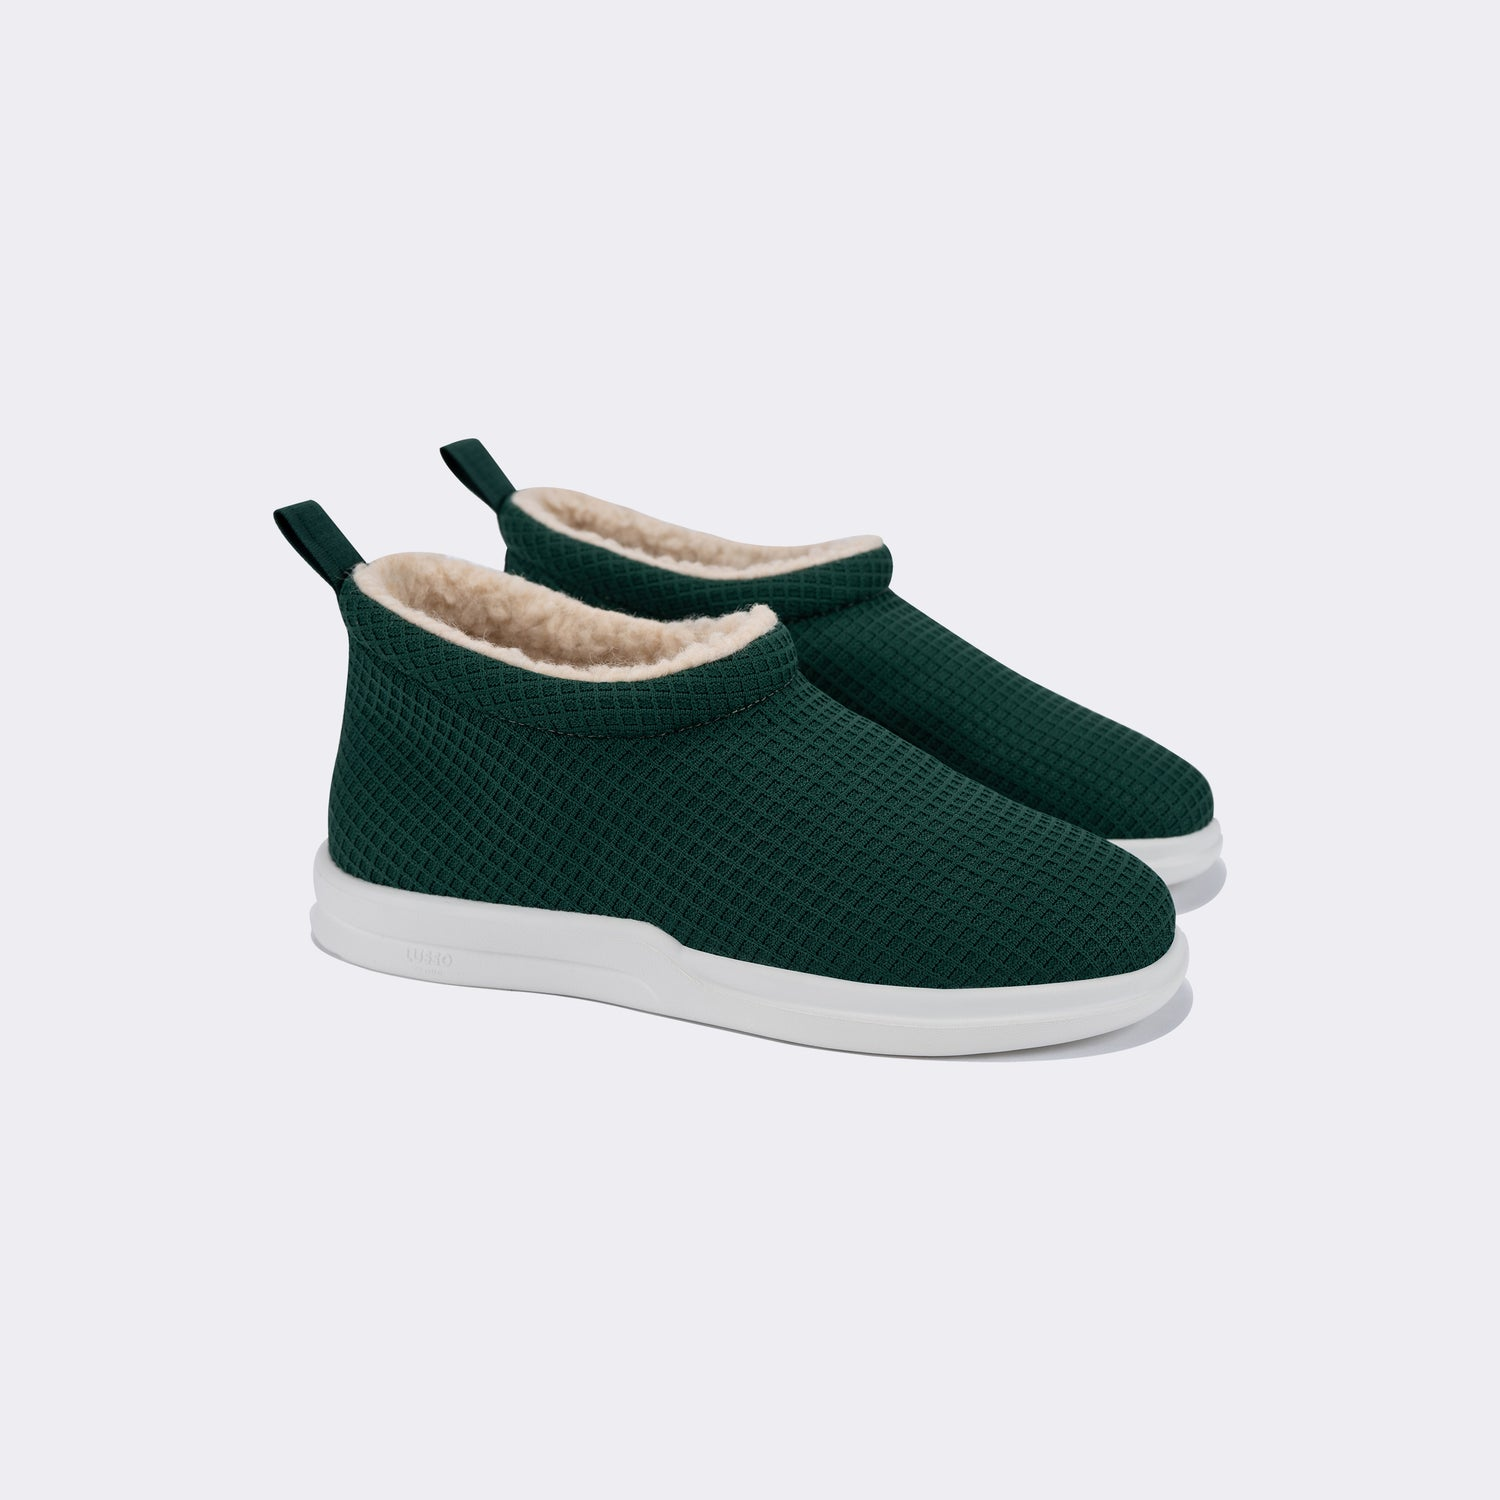 GURU SHEARLING - FOREST GREEN / LILY